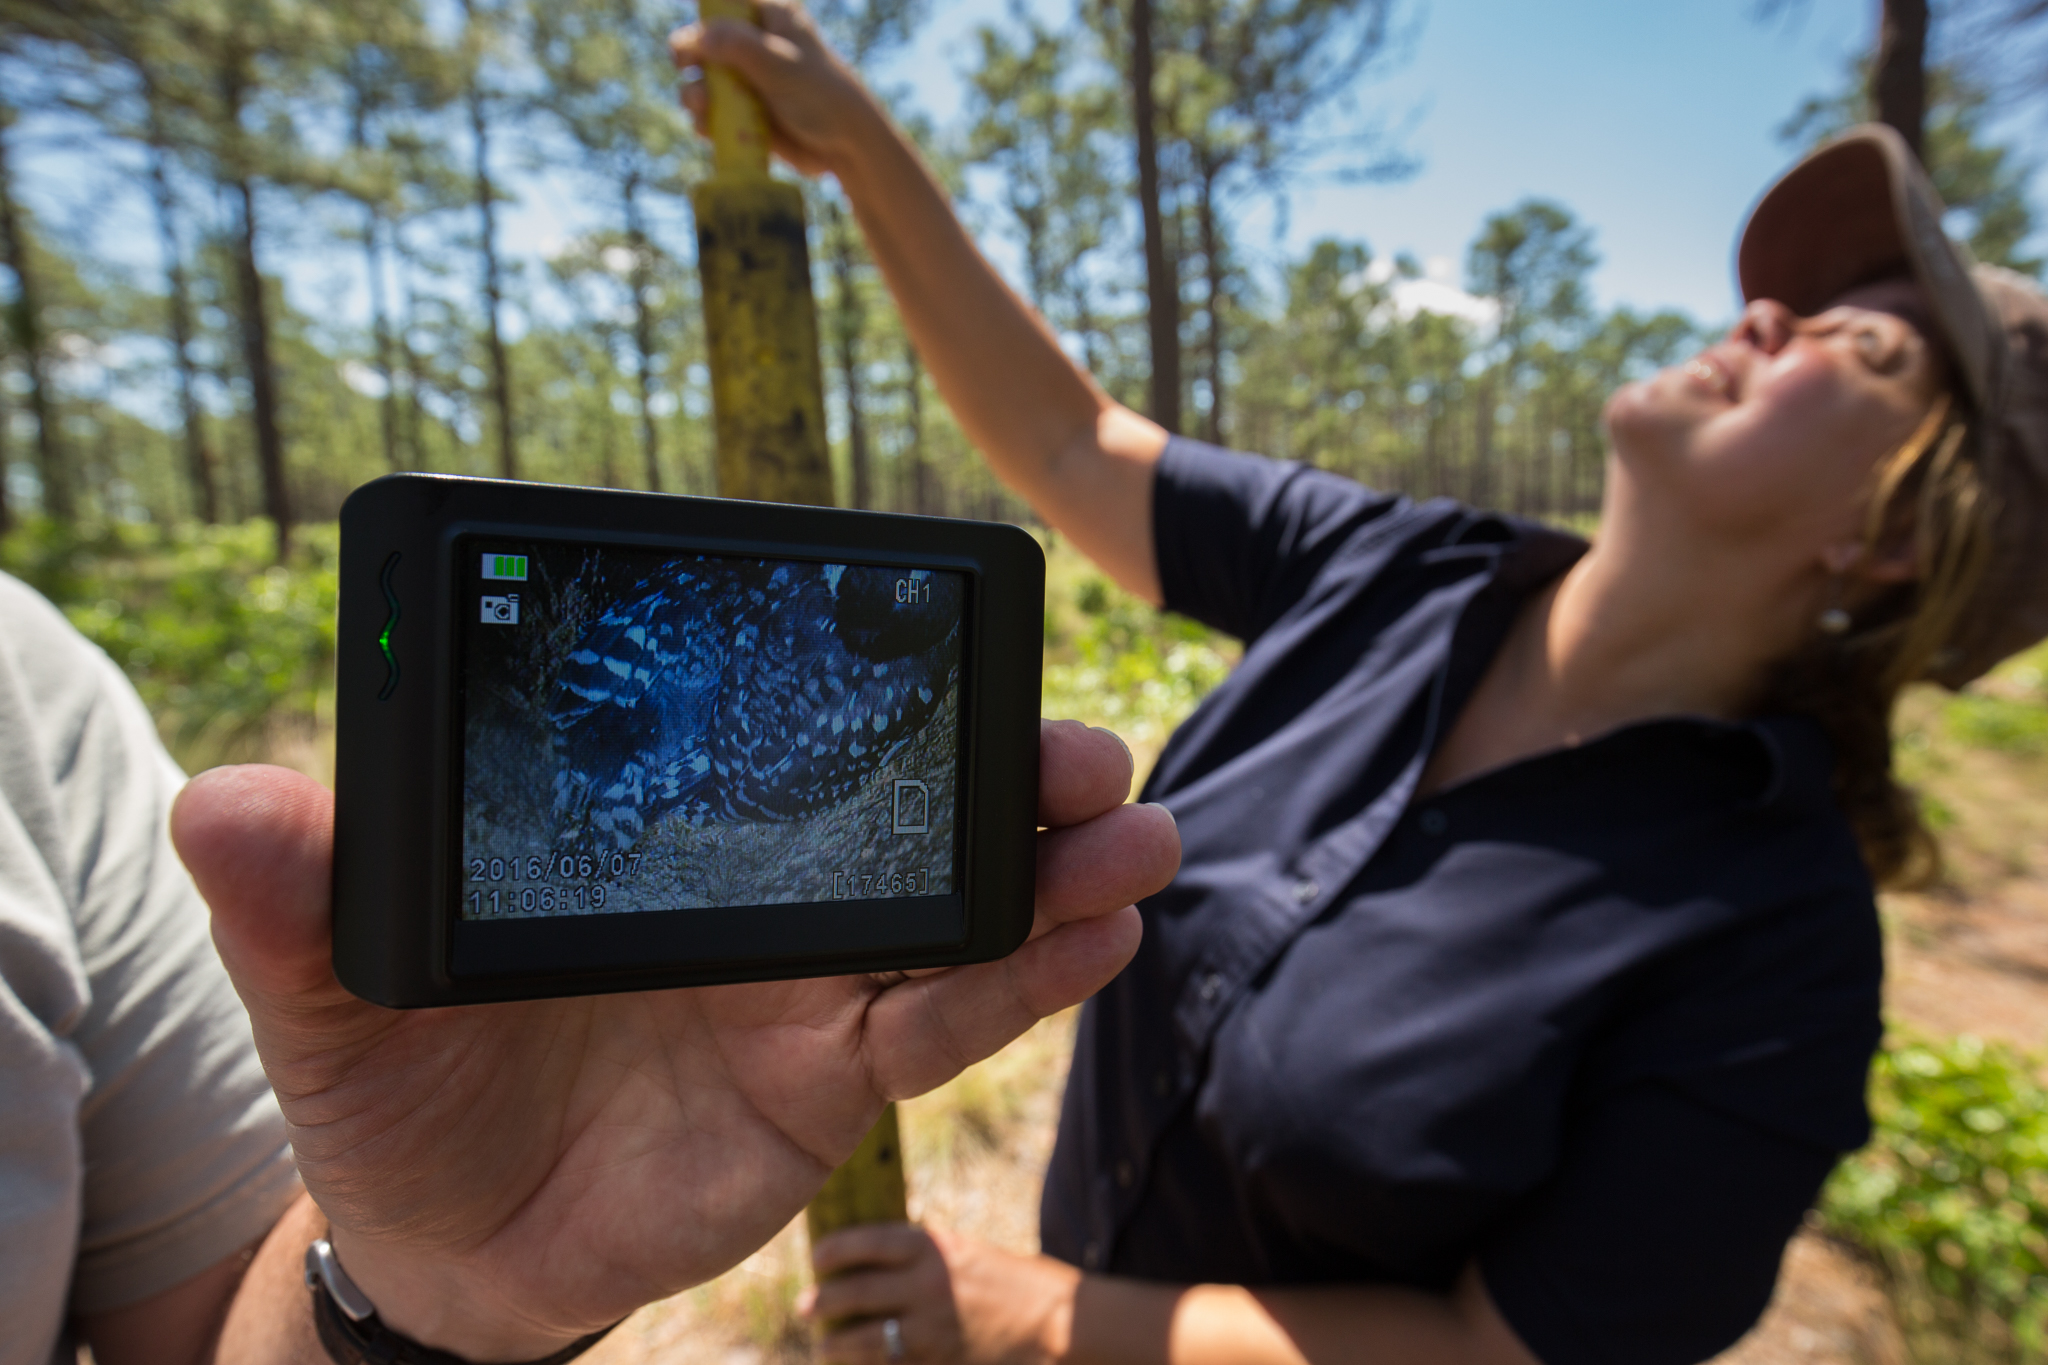 Using a wireless camera on a pole, biologists Sarah Hovis and Kerry Brust inspect a red-cockaded woodpecker cavity in the Walthour-Moss Foundation woods, NC.